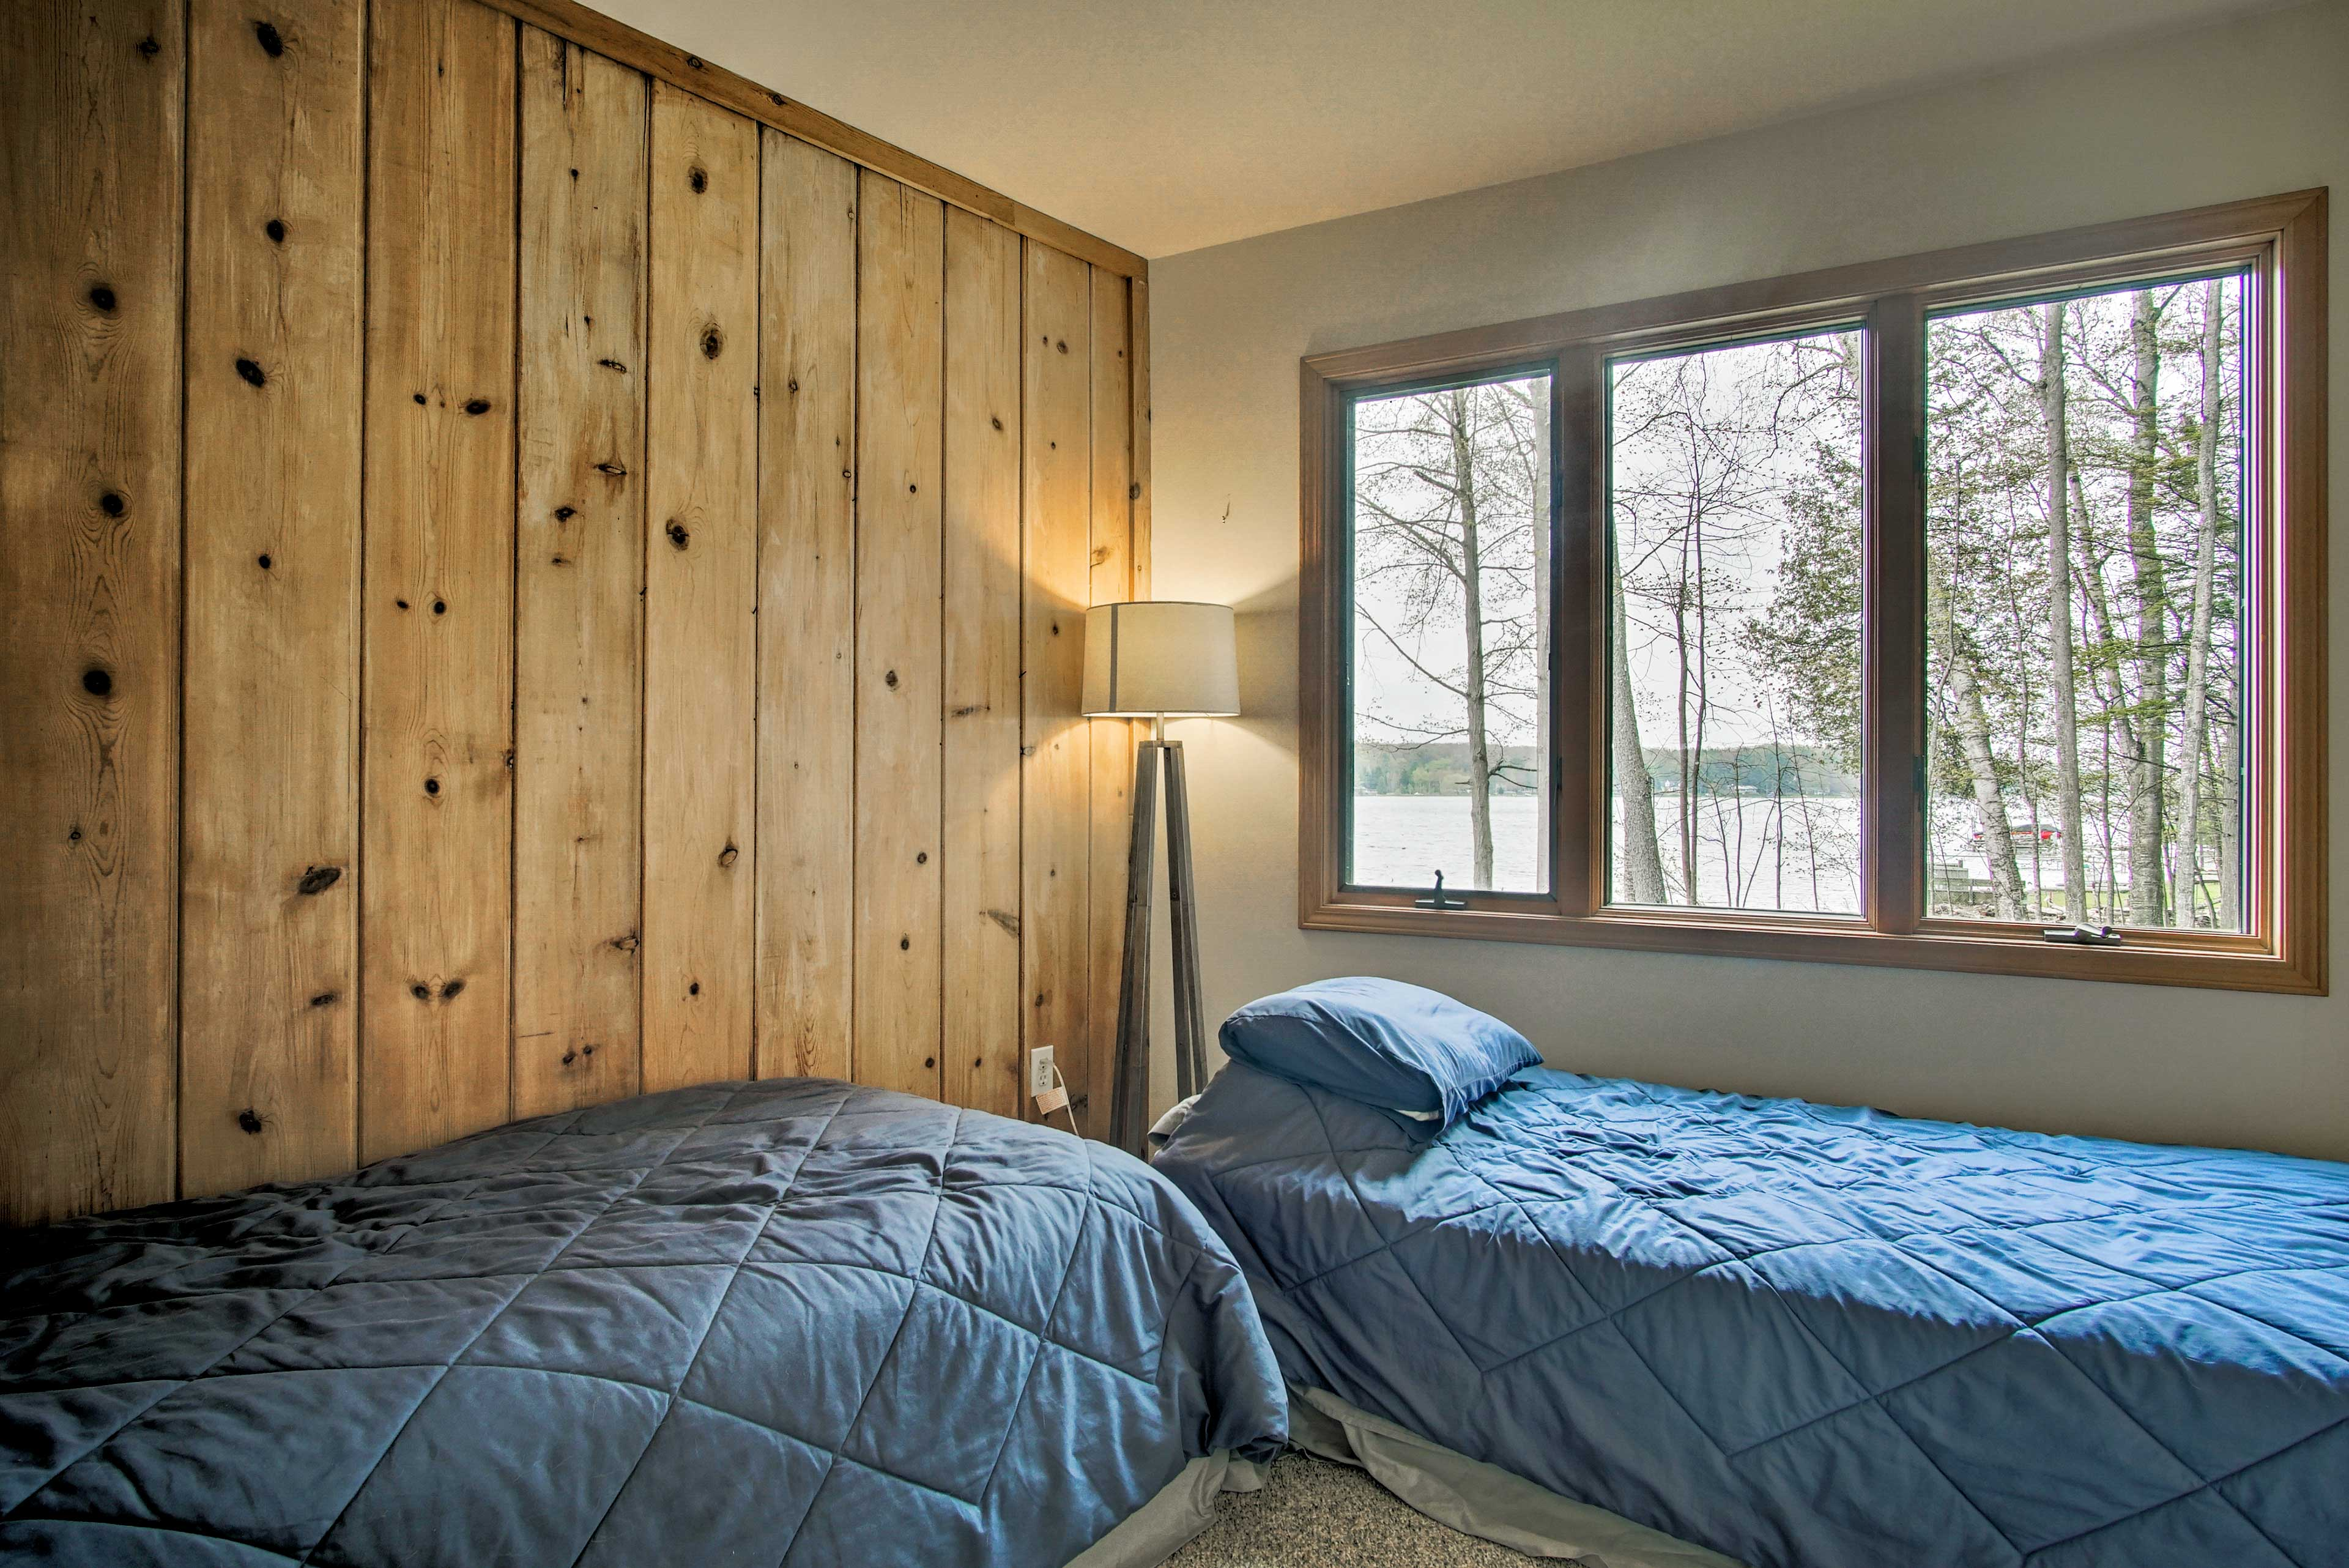 Two more travelers can drift to sleep in these twin beds.